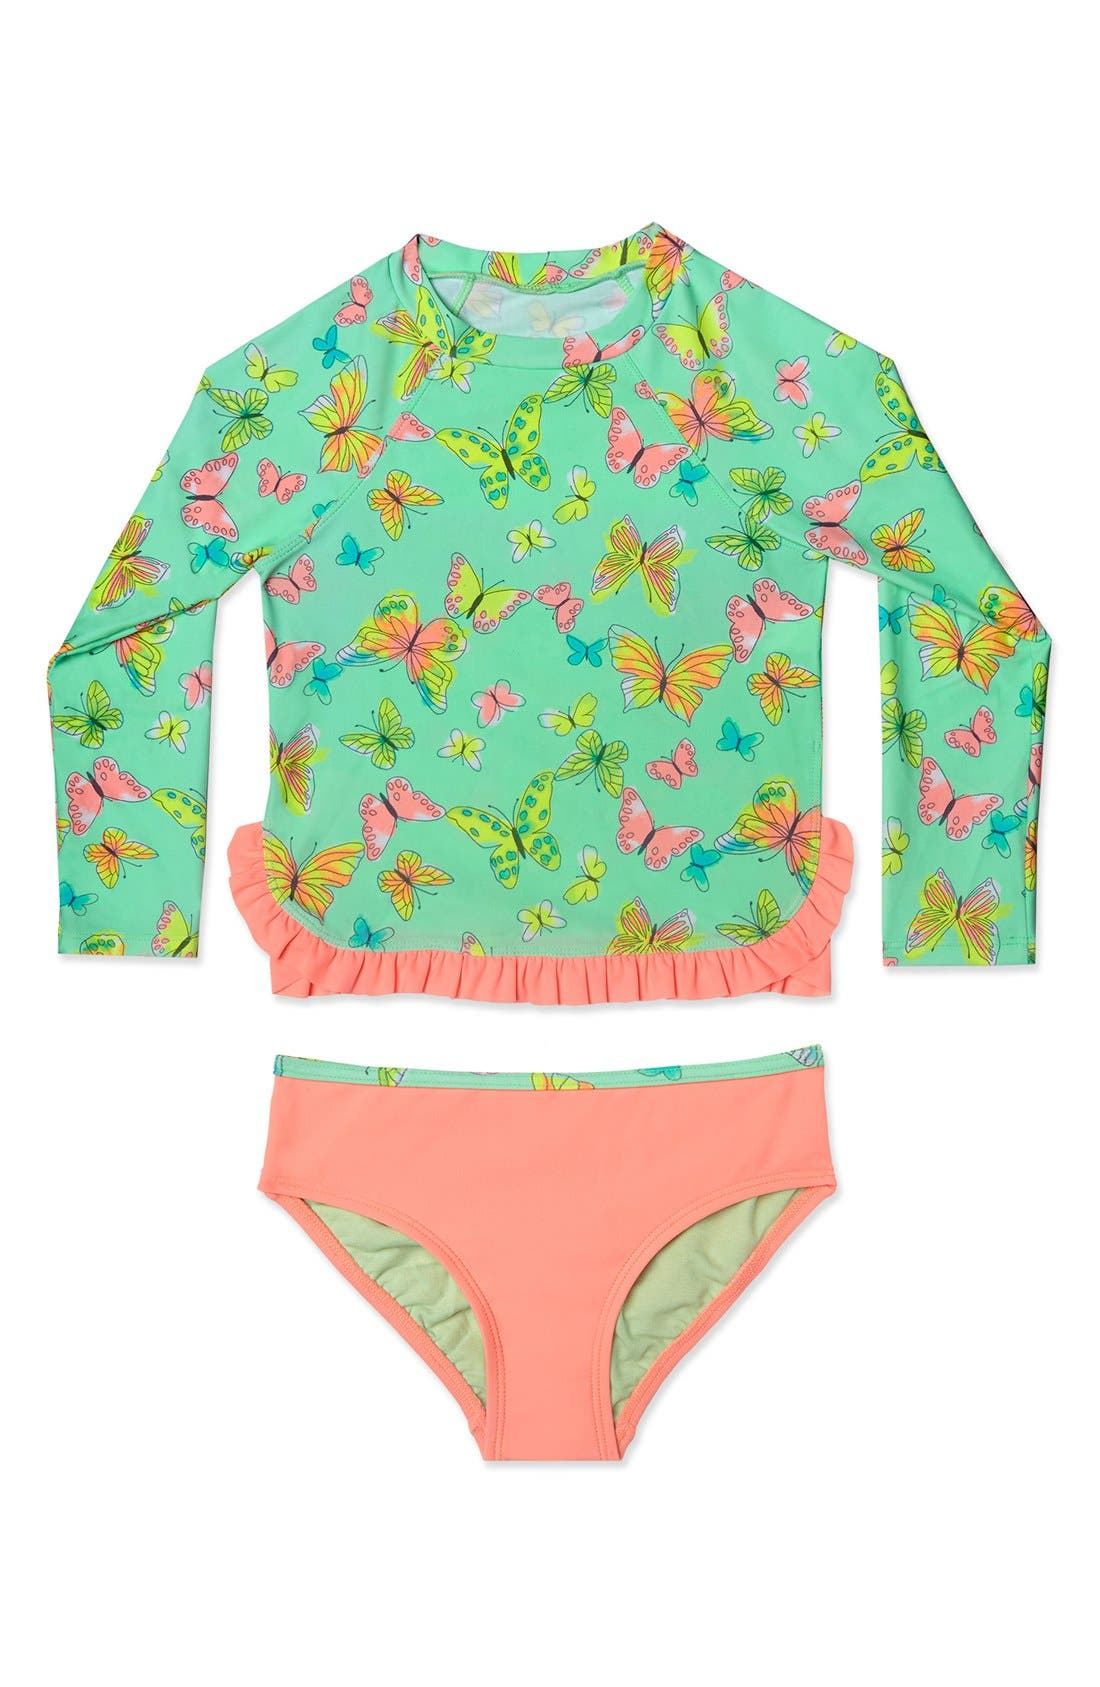 'Butterfly' Two-Piece Rashguard Swimsuit,                             Main thumbnail 1, color,